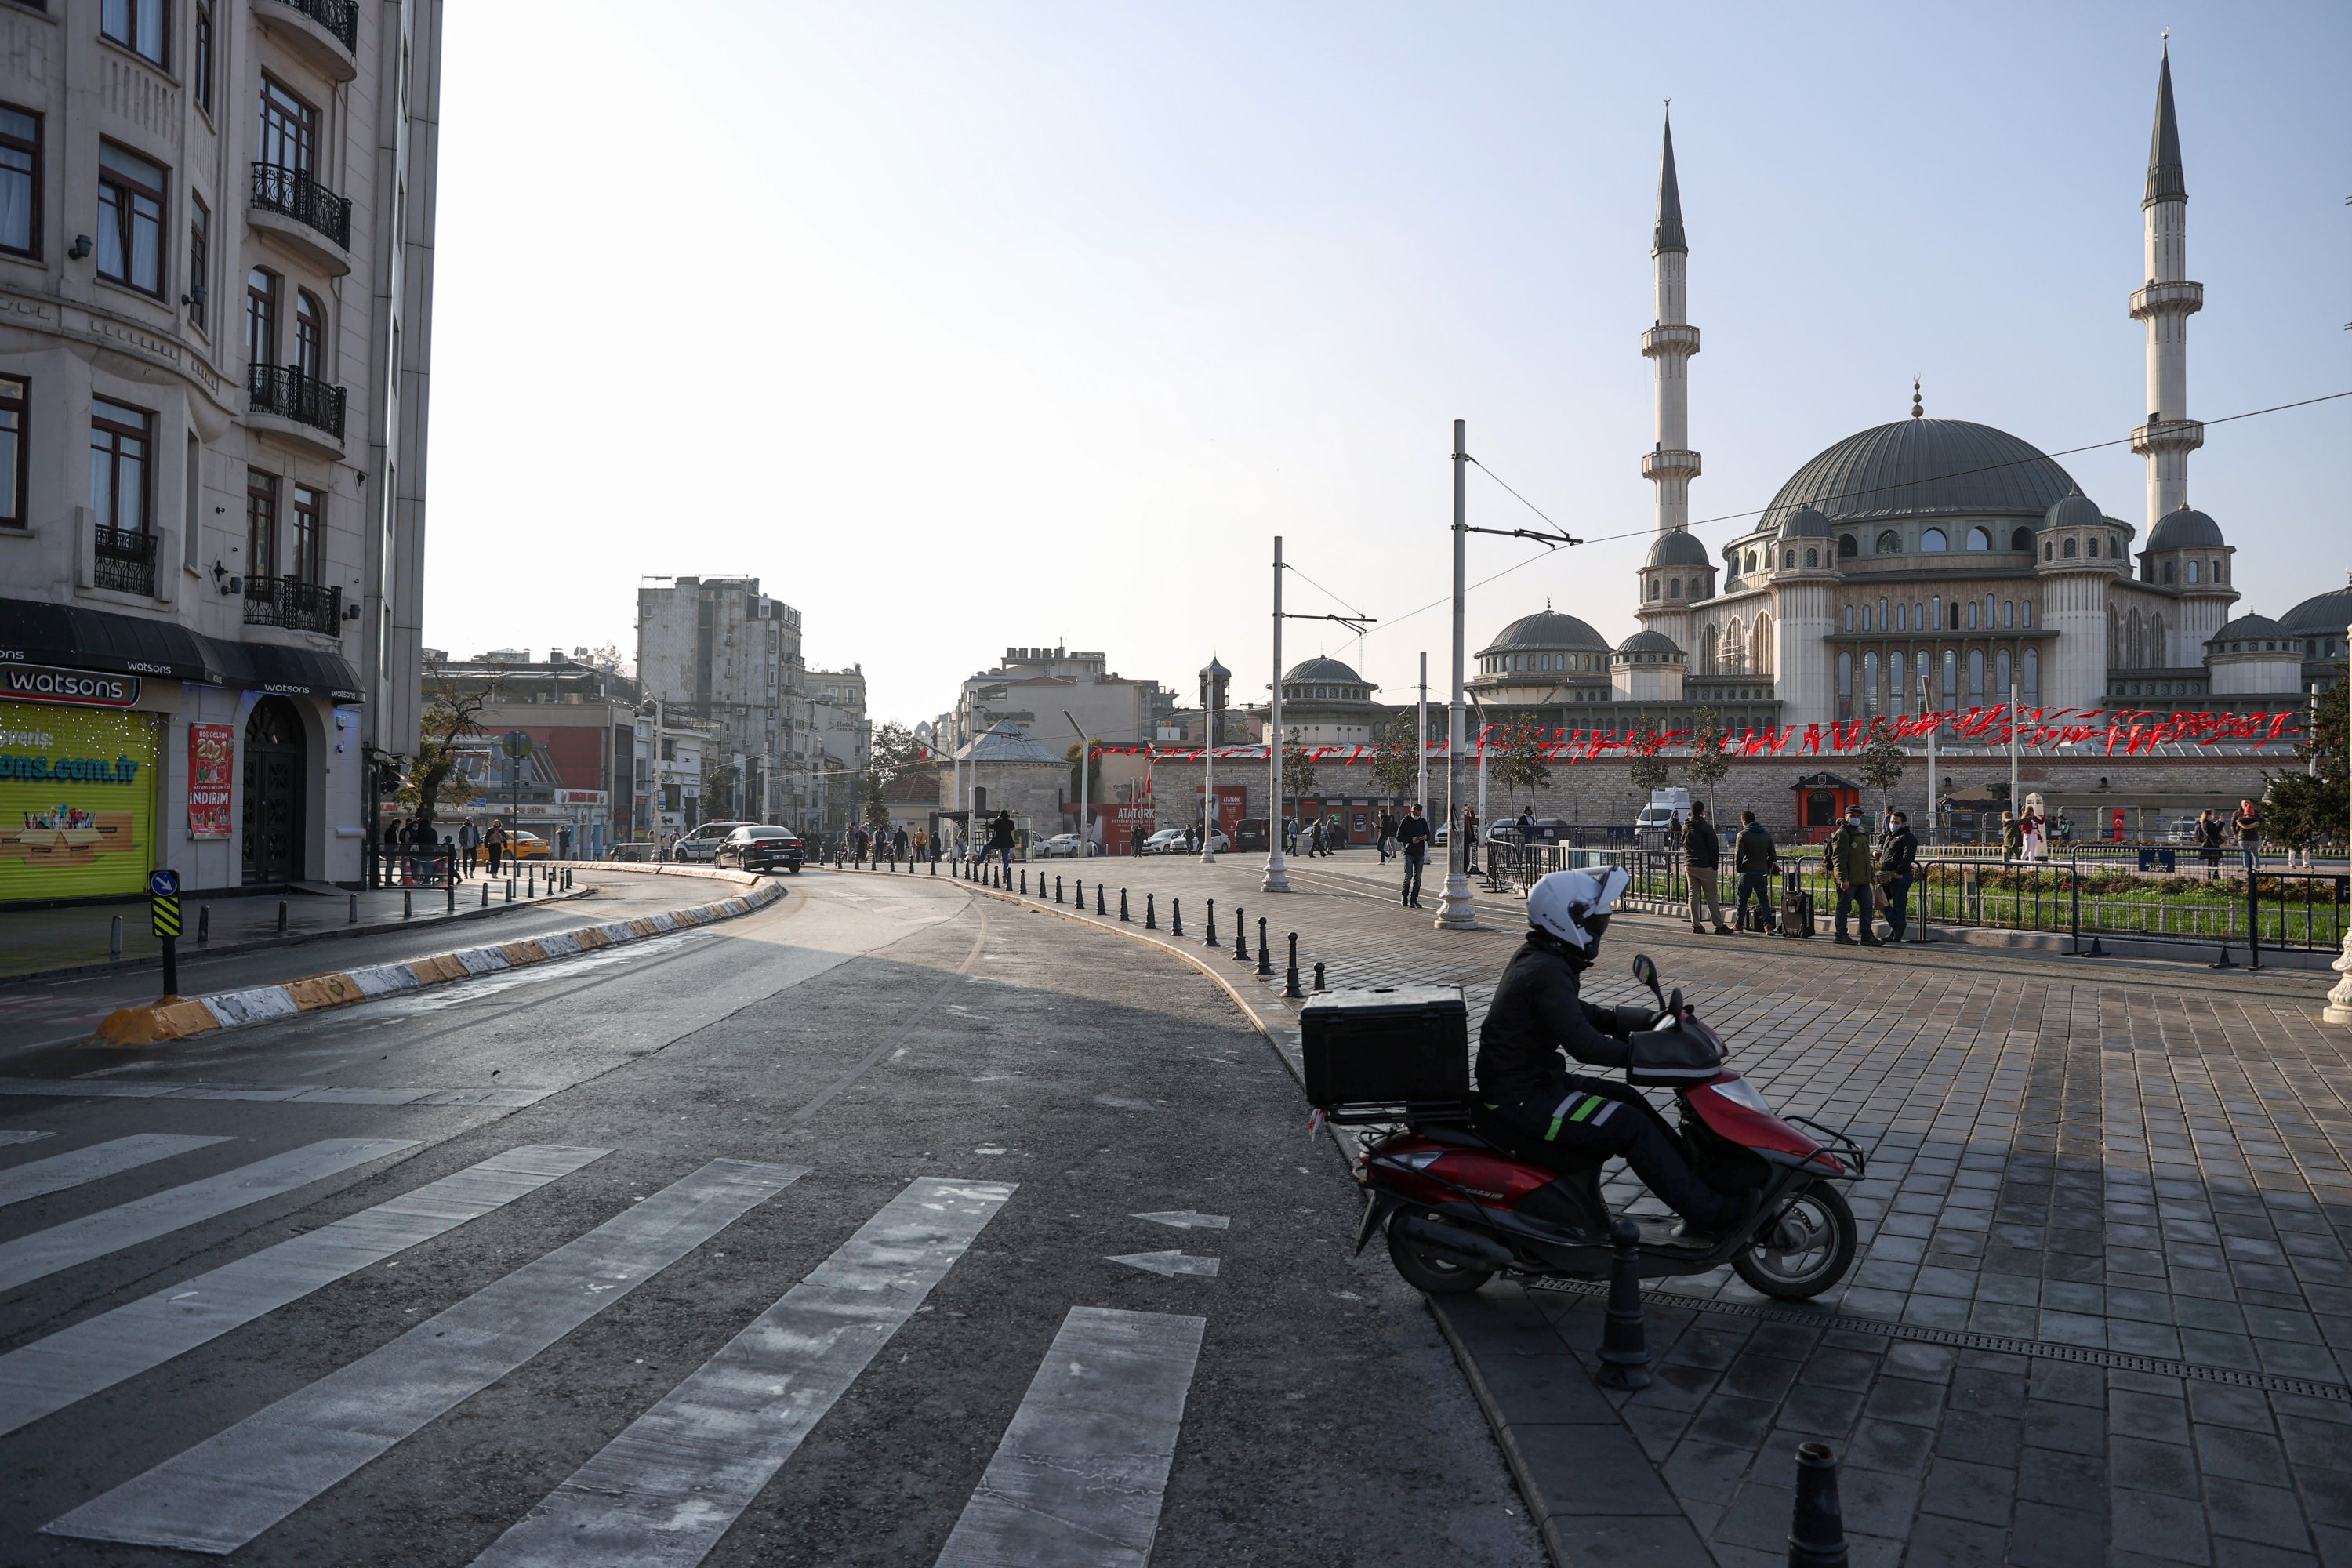 Death toll from COVID-19 continues to rise as Turkey undergoes 1st weekend lockdown in months